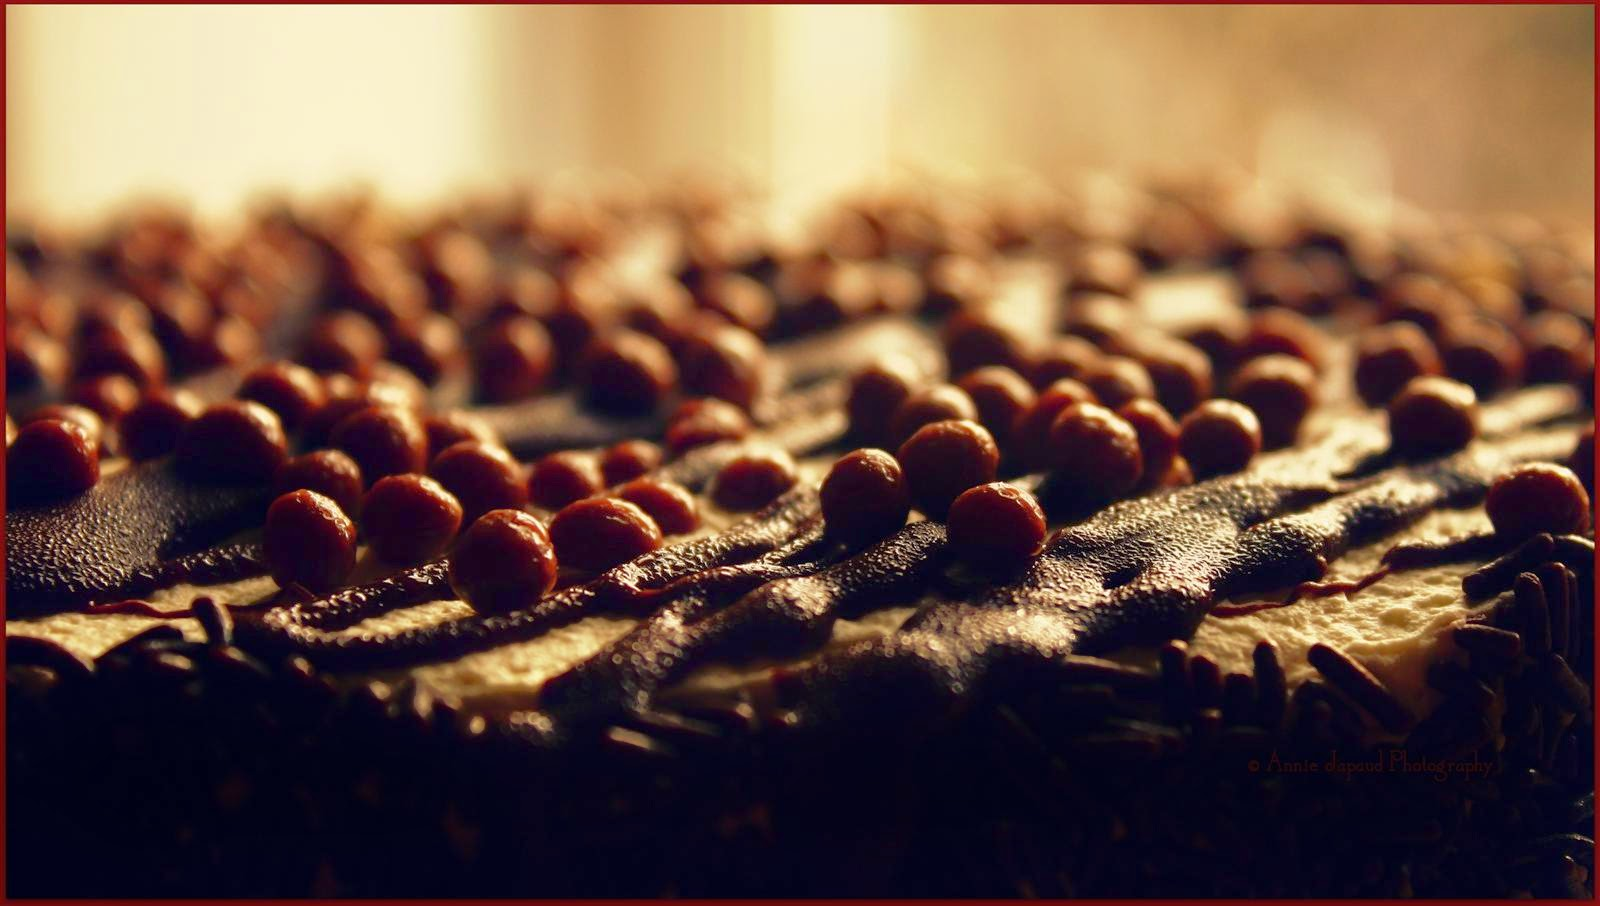 macro image of the chocolate decorations on top of a chocolate cake